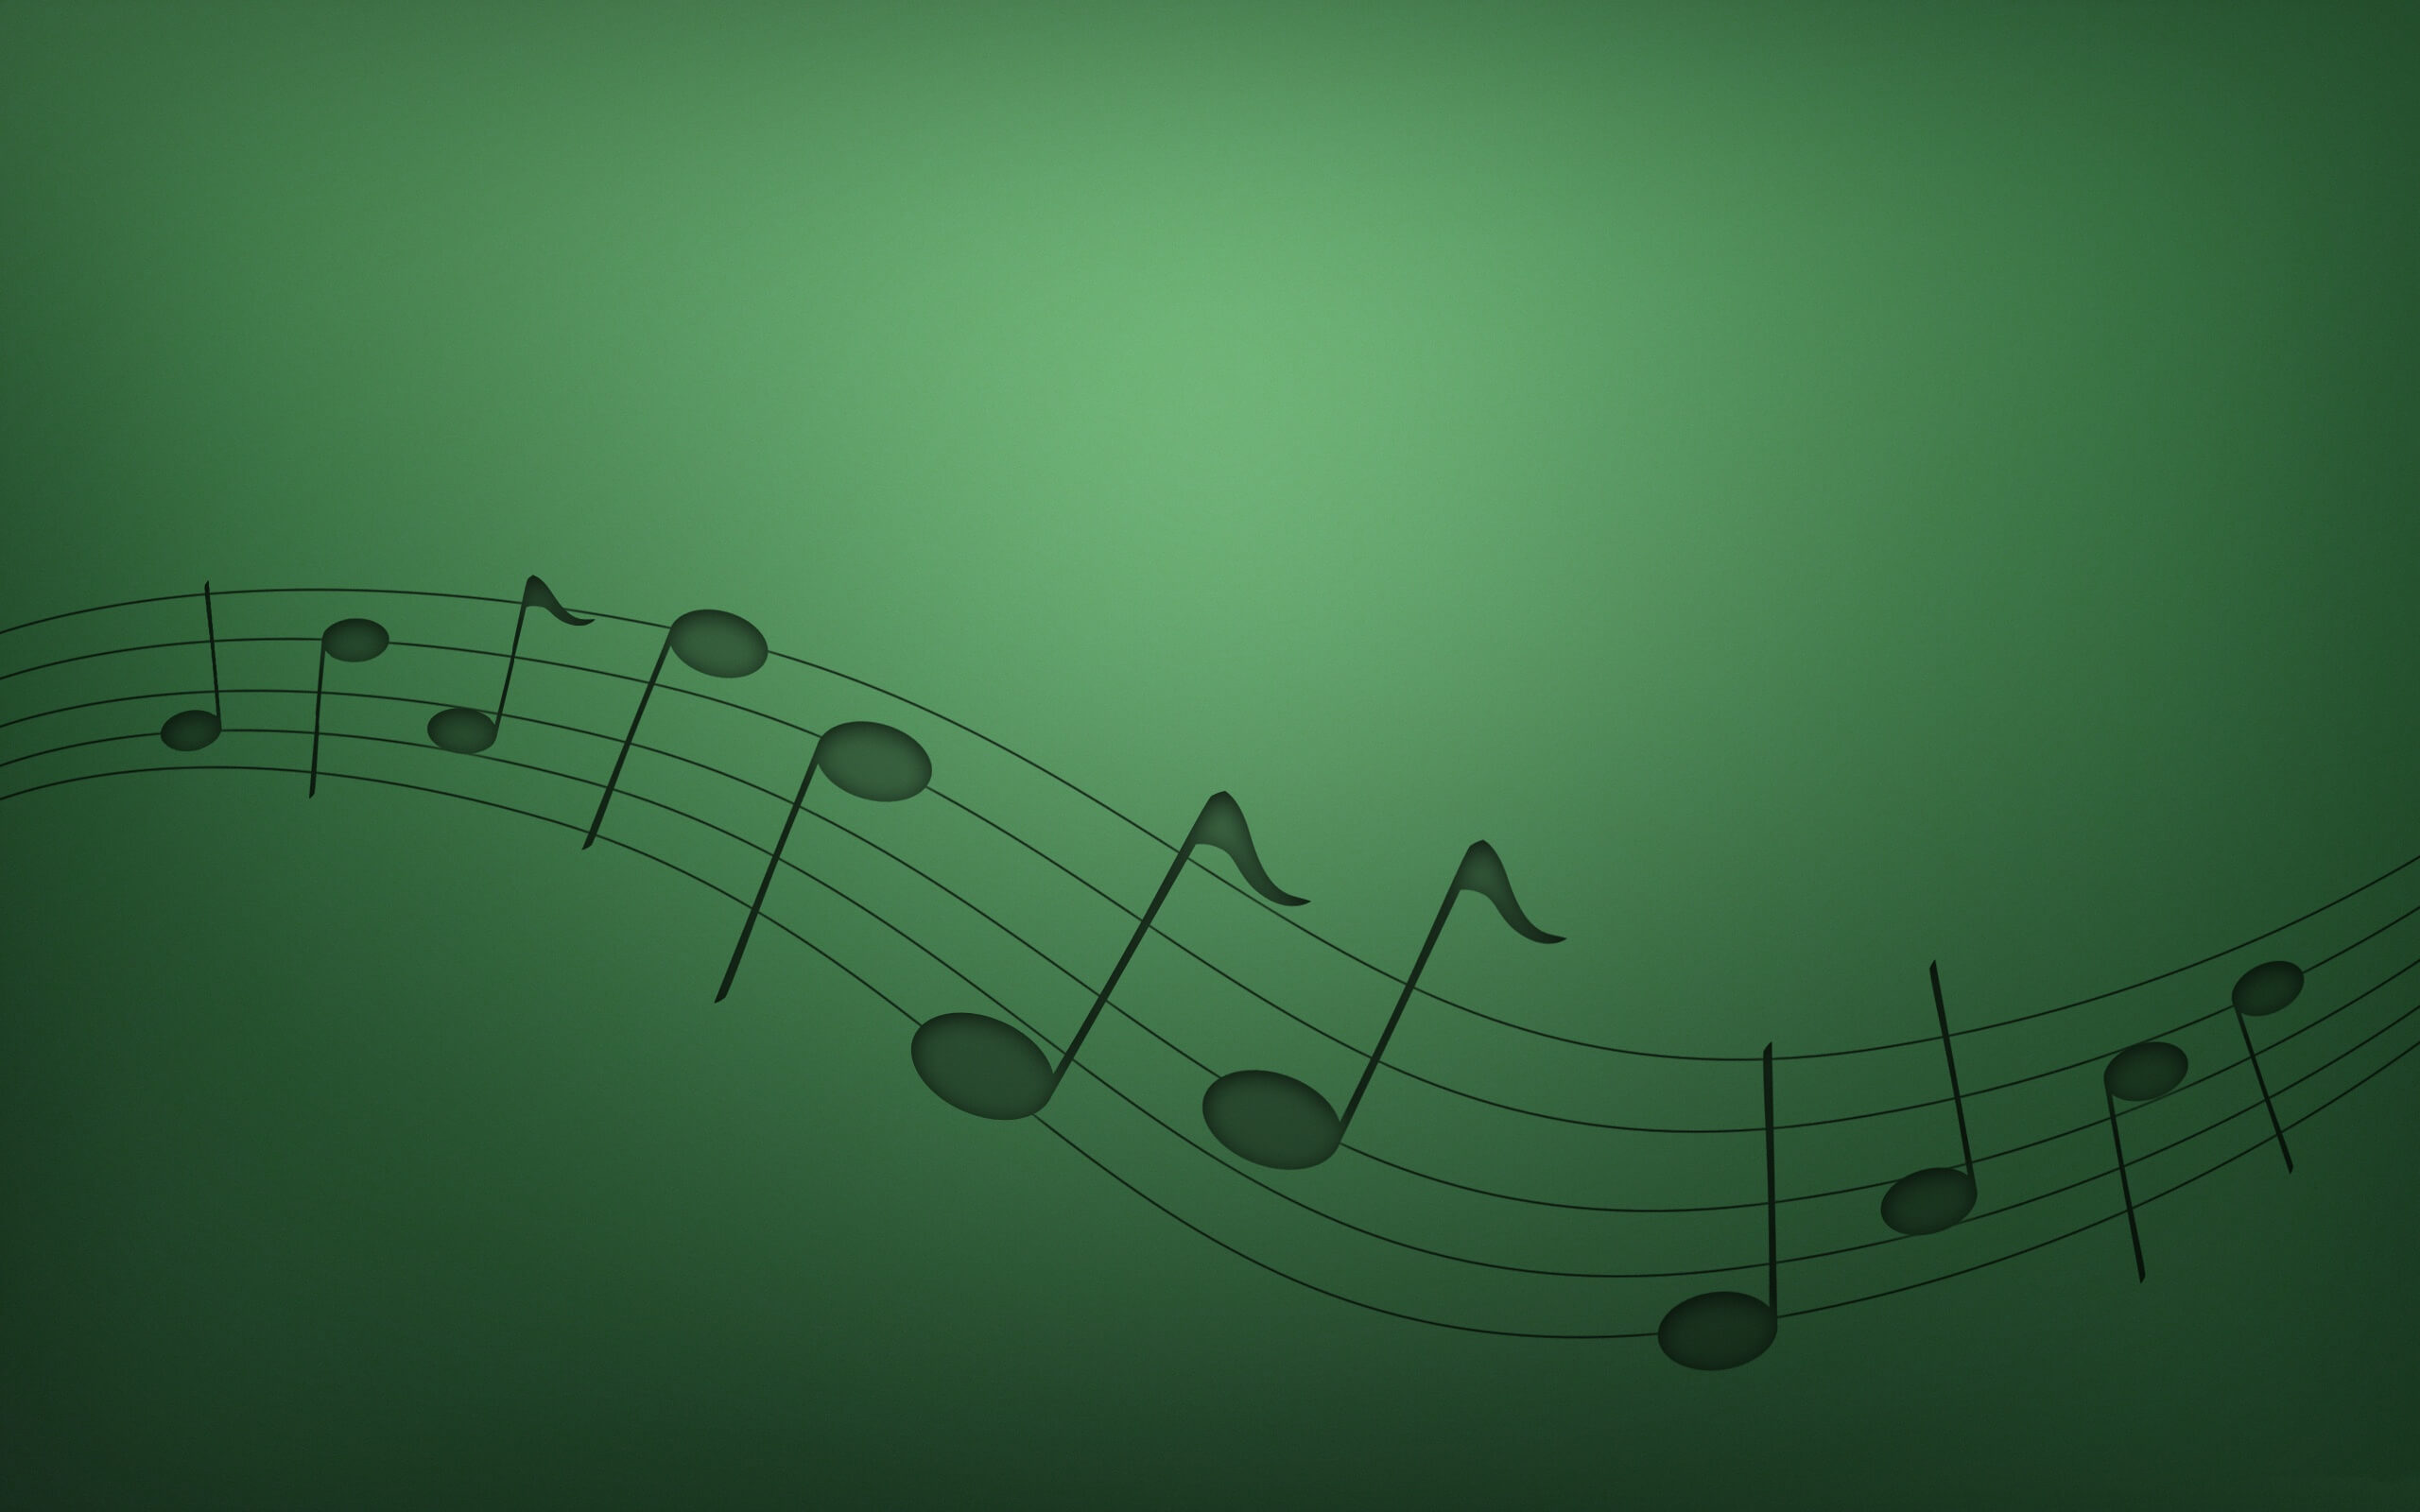 Download Music Note Wallpaper Hd Backgrounds Download Itl Cat